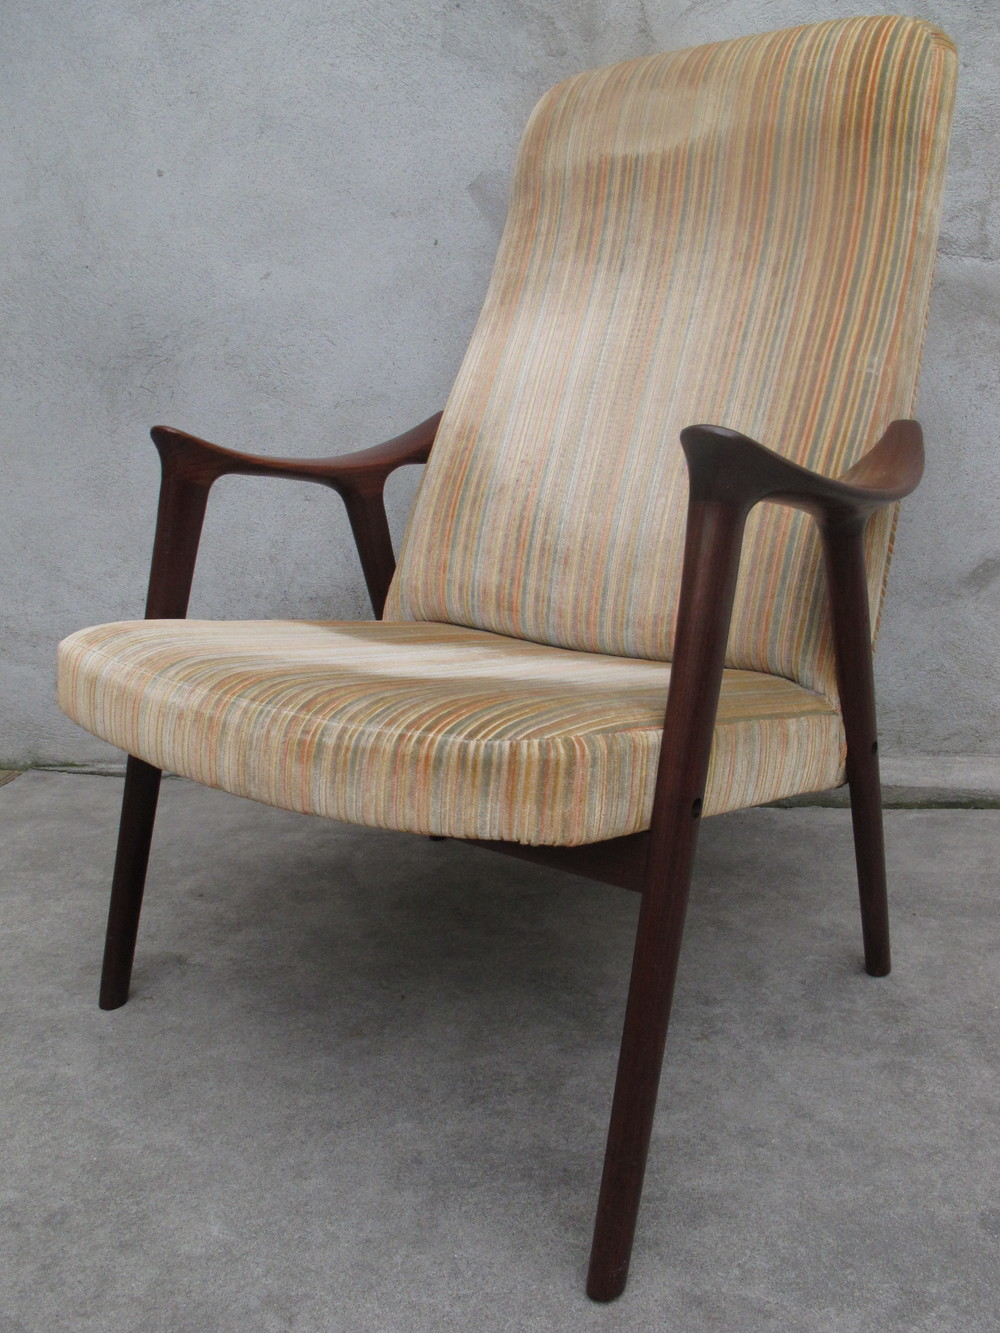 NORWEGIAN LOUNGE CHAIR BY MORE LENESTOLFABRIKK